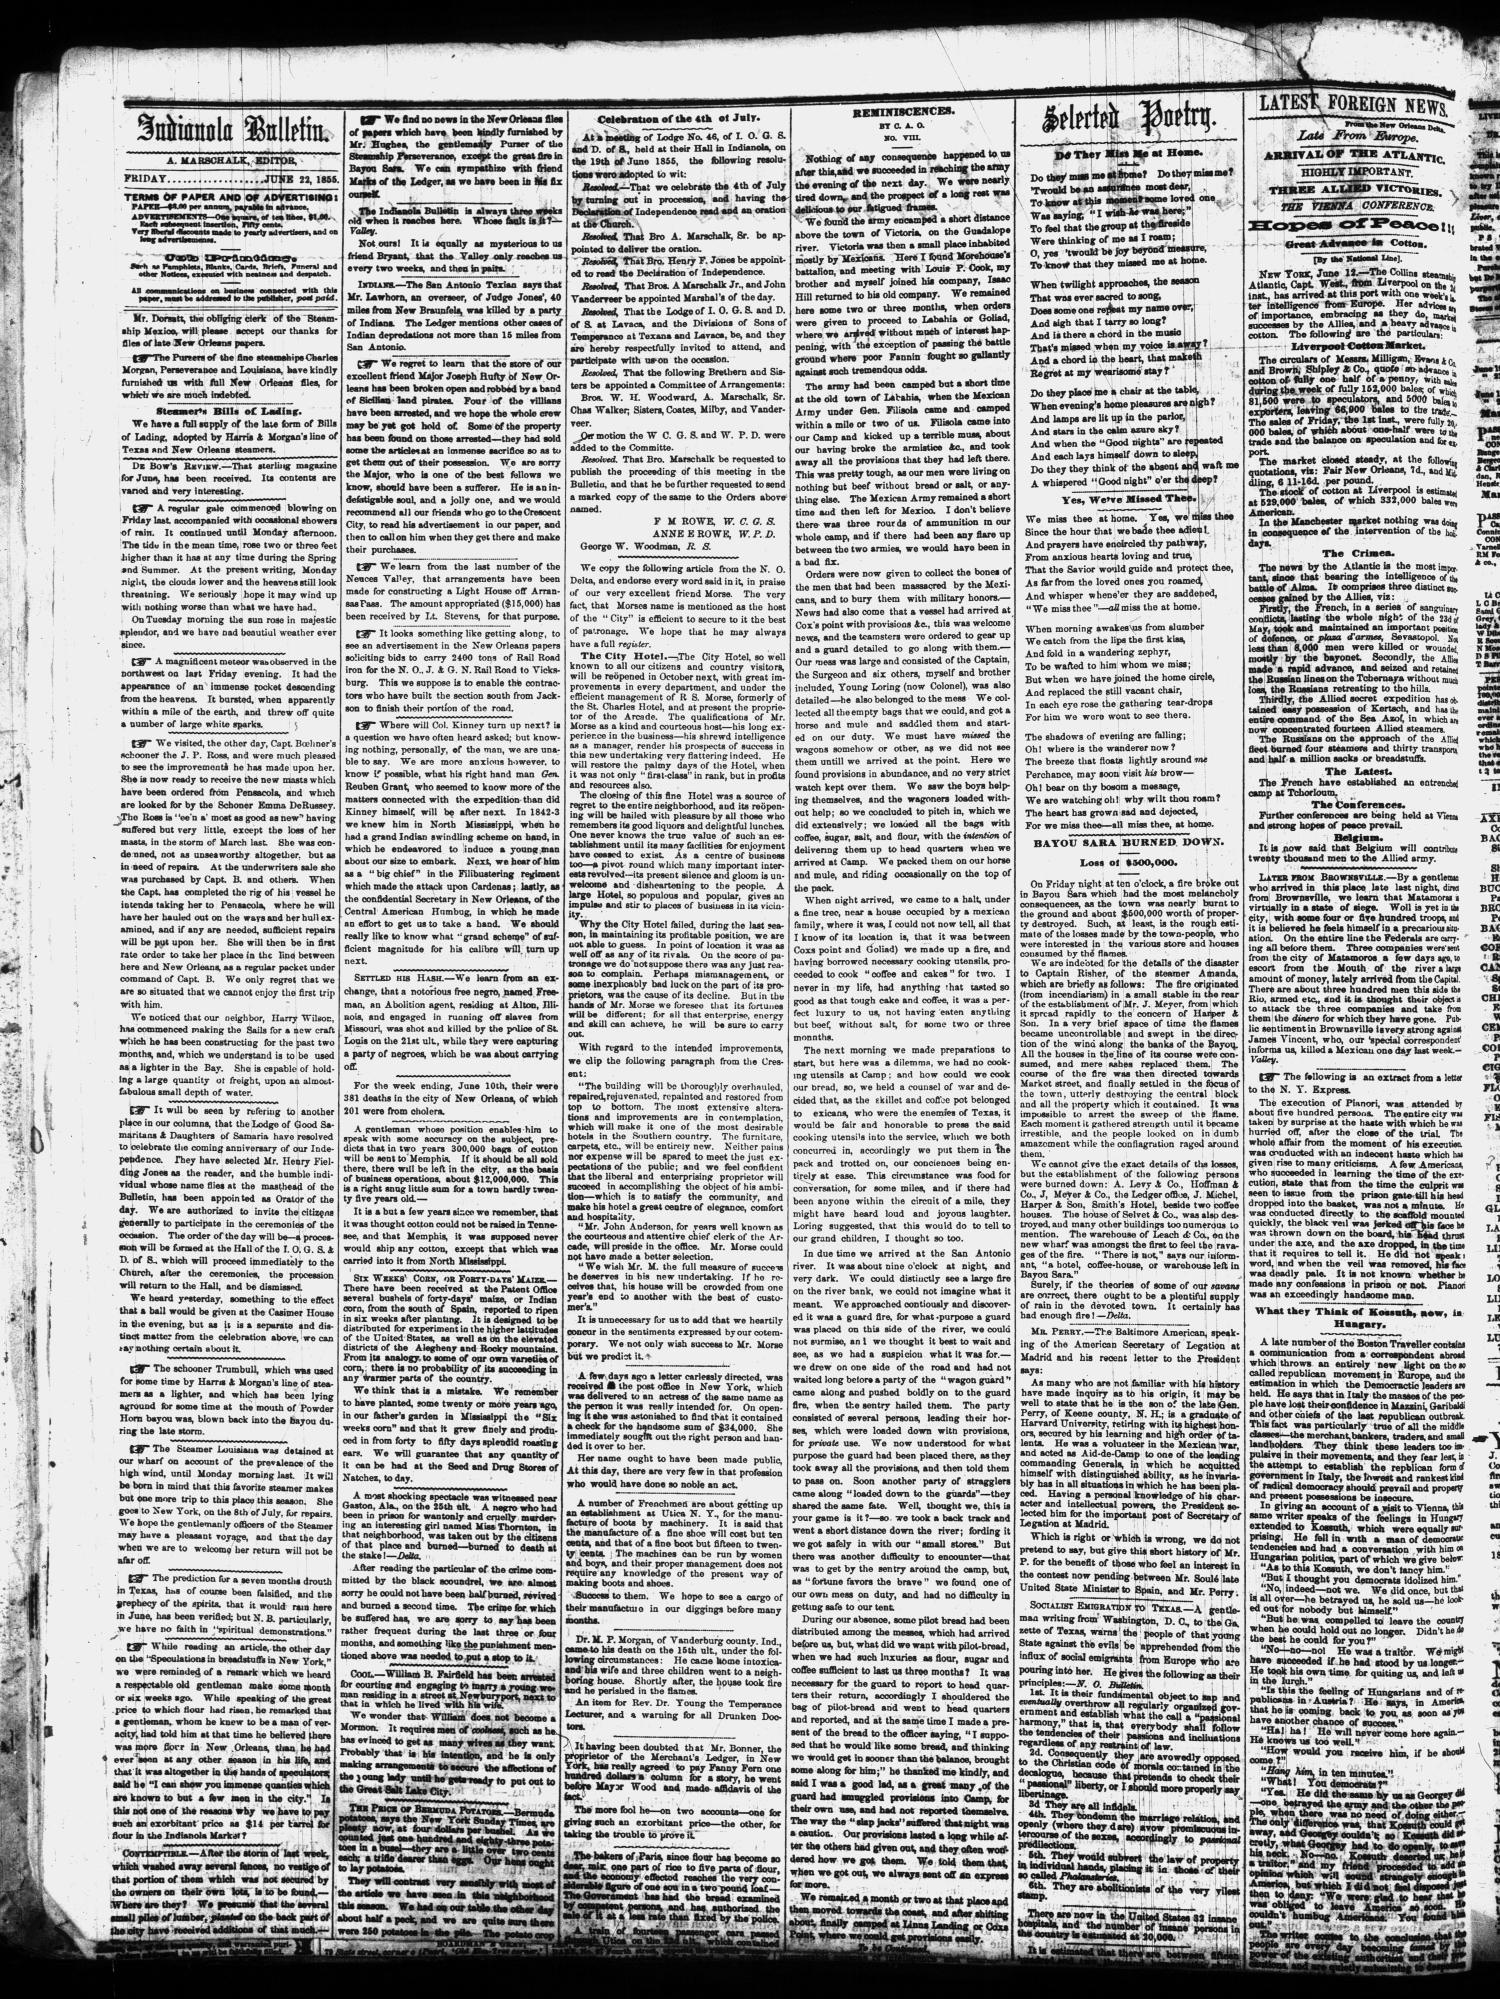 The Indianola Bulletin. (Indianola, Tex.), Vol. 1, No. 11, Ed. 1 Friday, June 22, 1855                                                                                                      [Sequence #]: 2 of 4